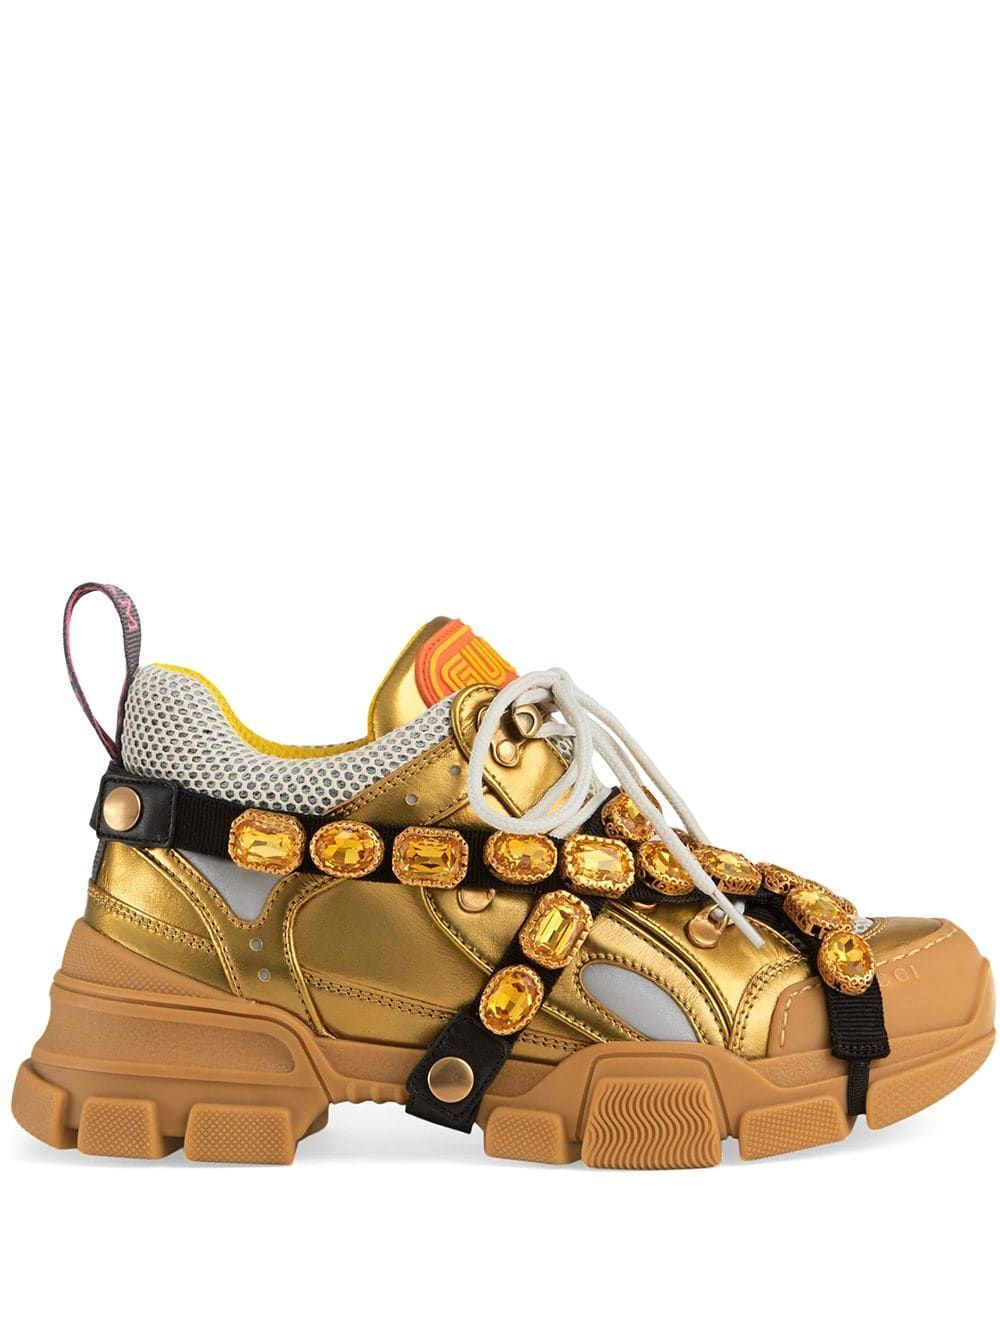 462d8c77af227 GUCCI GUCCI FLASHTREK LEATHER SNEAKER WITH CRYSTALS - GOLD.  gucci  shoes